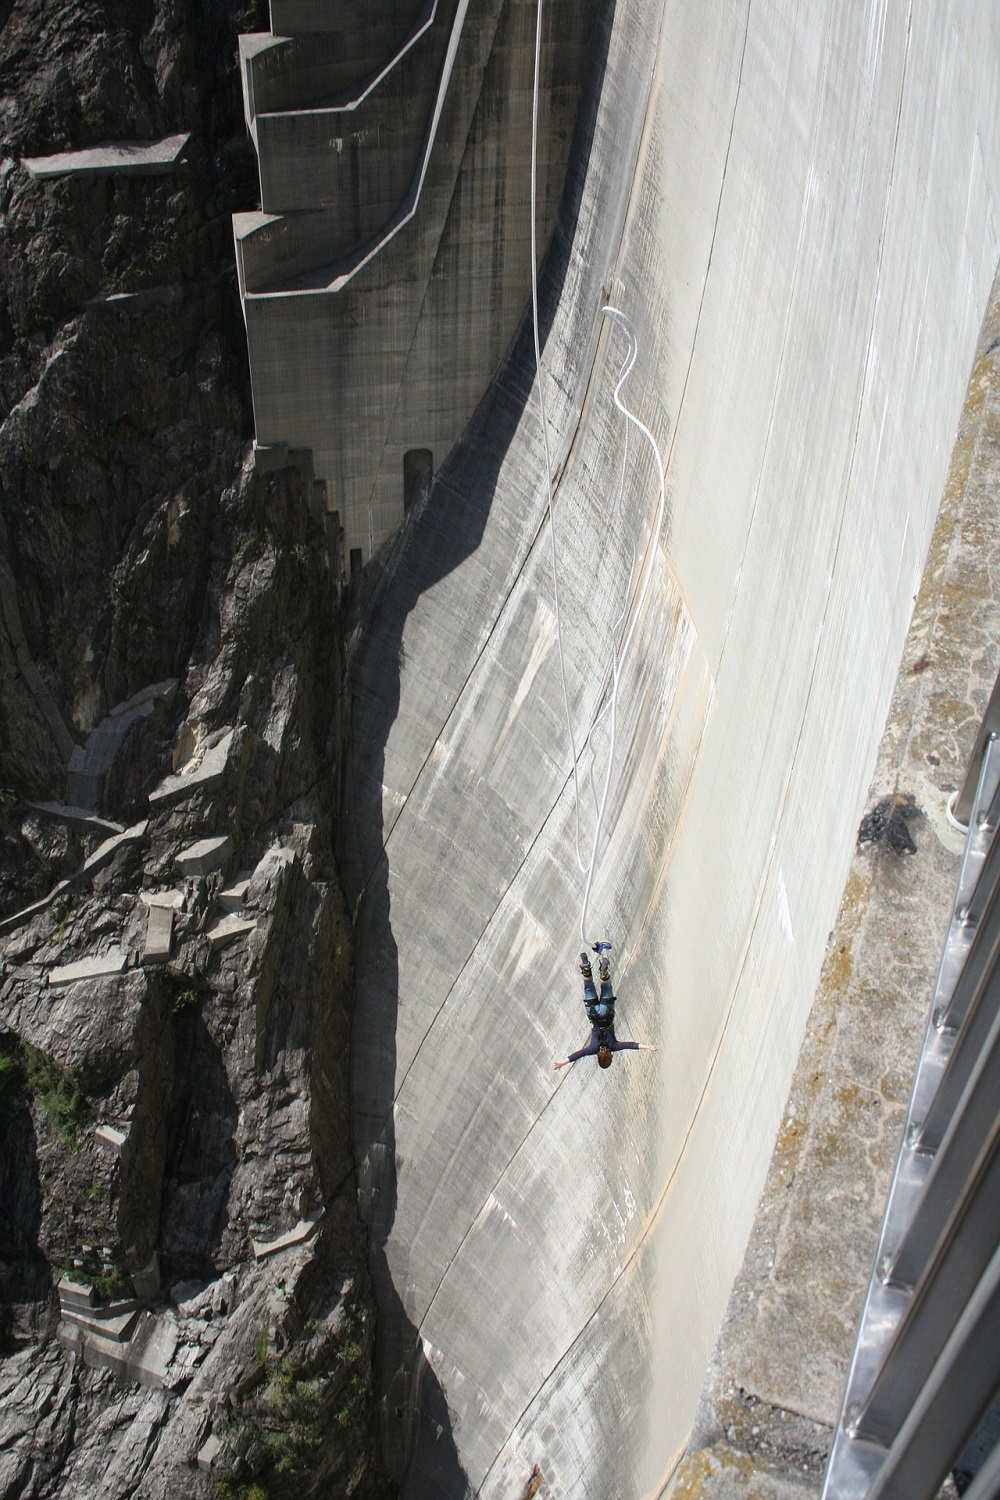 bungee-jumping-from-a-dam-2